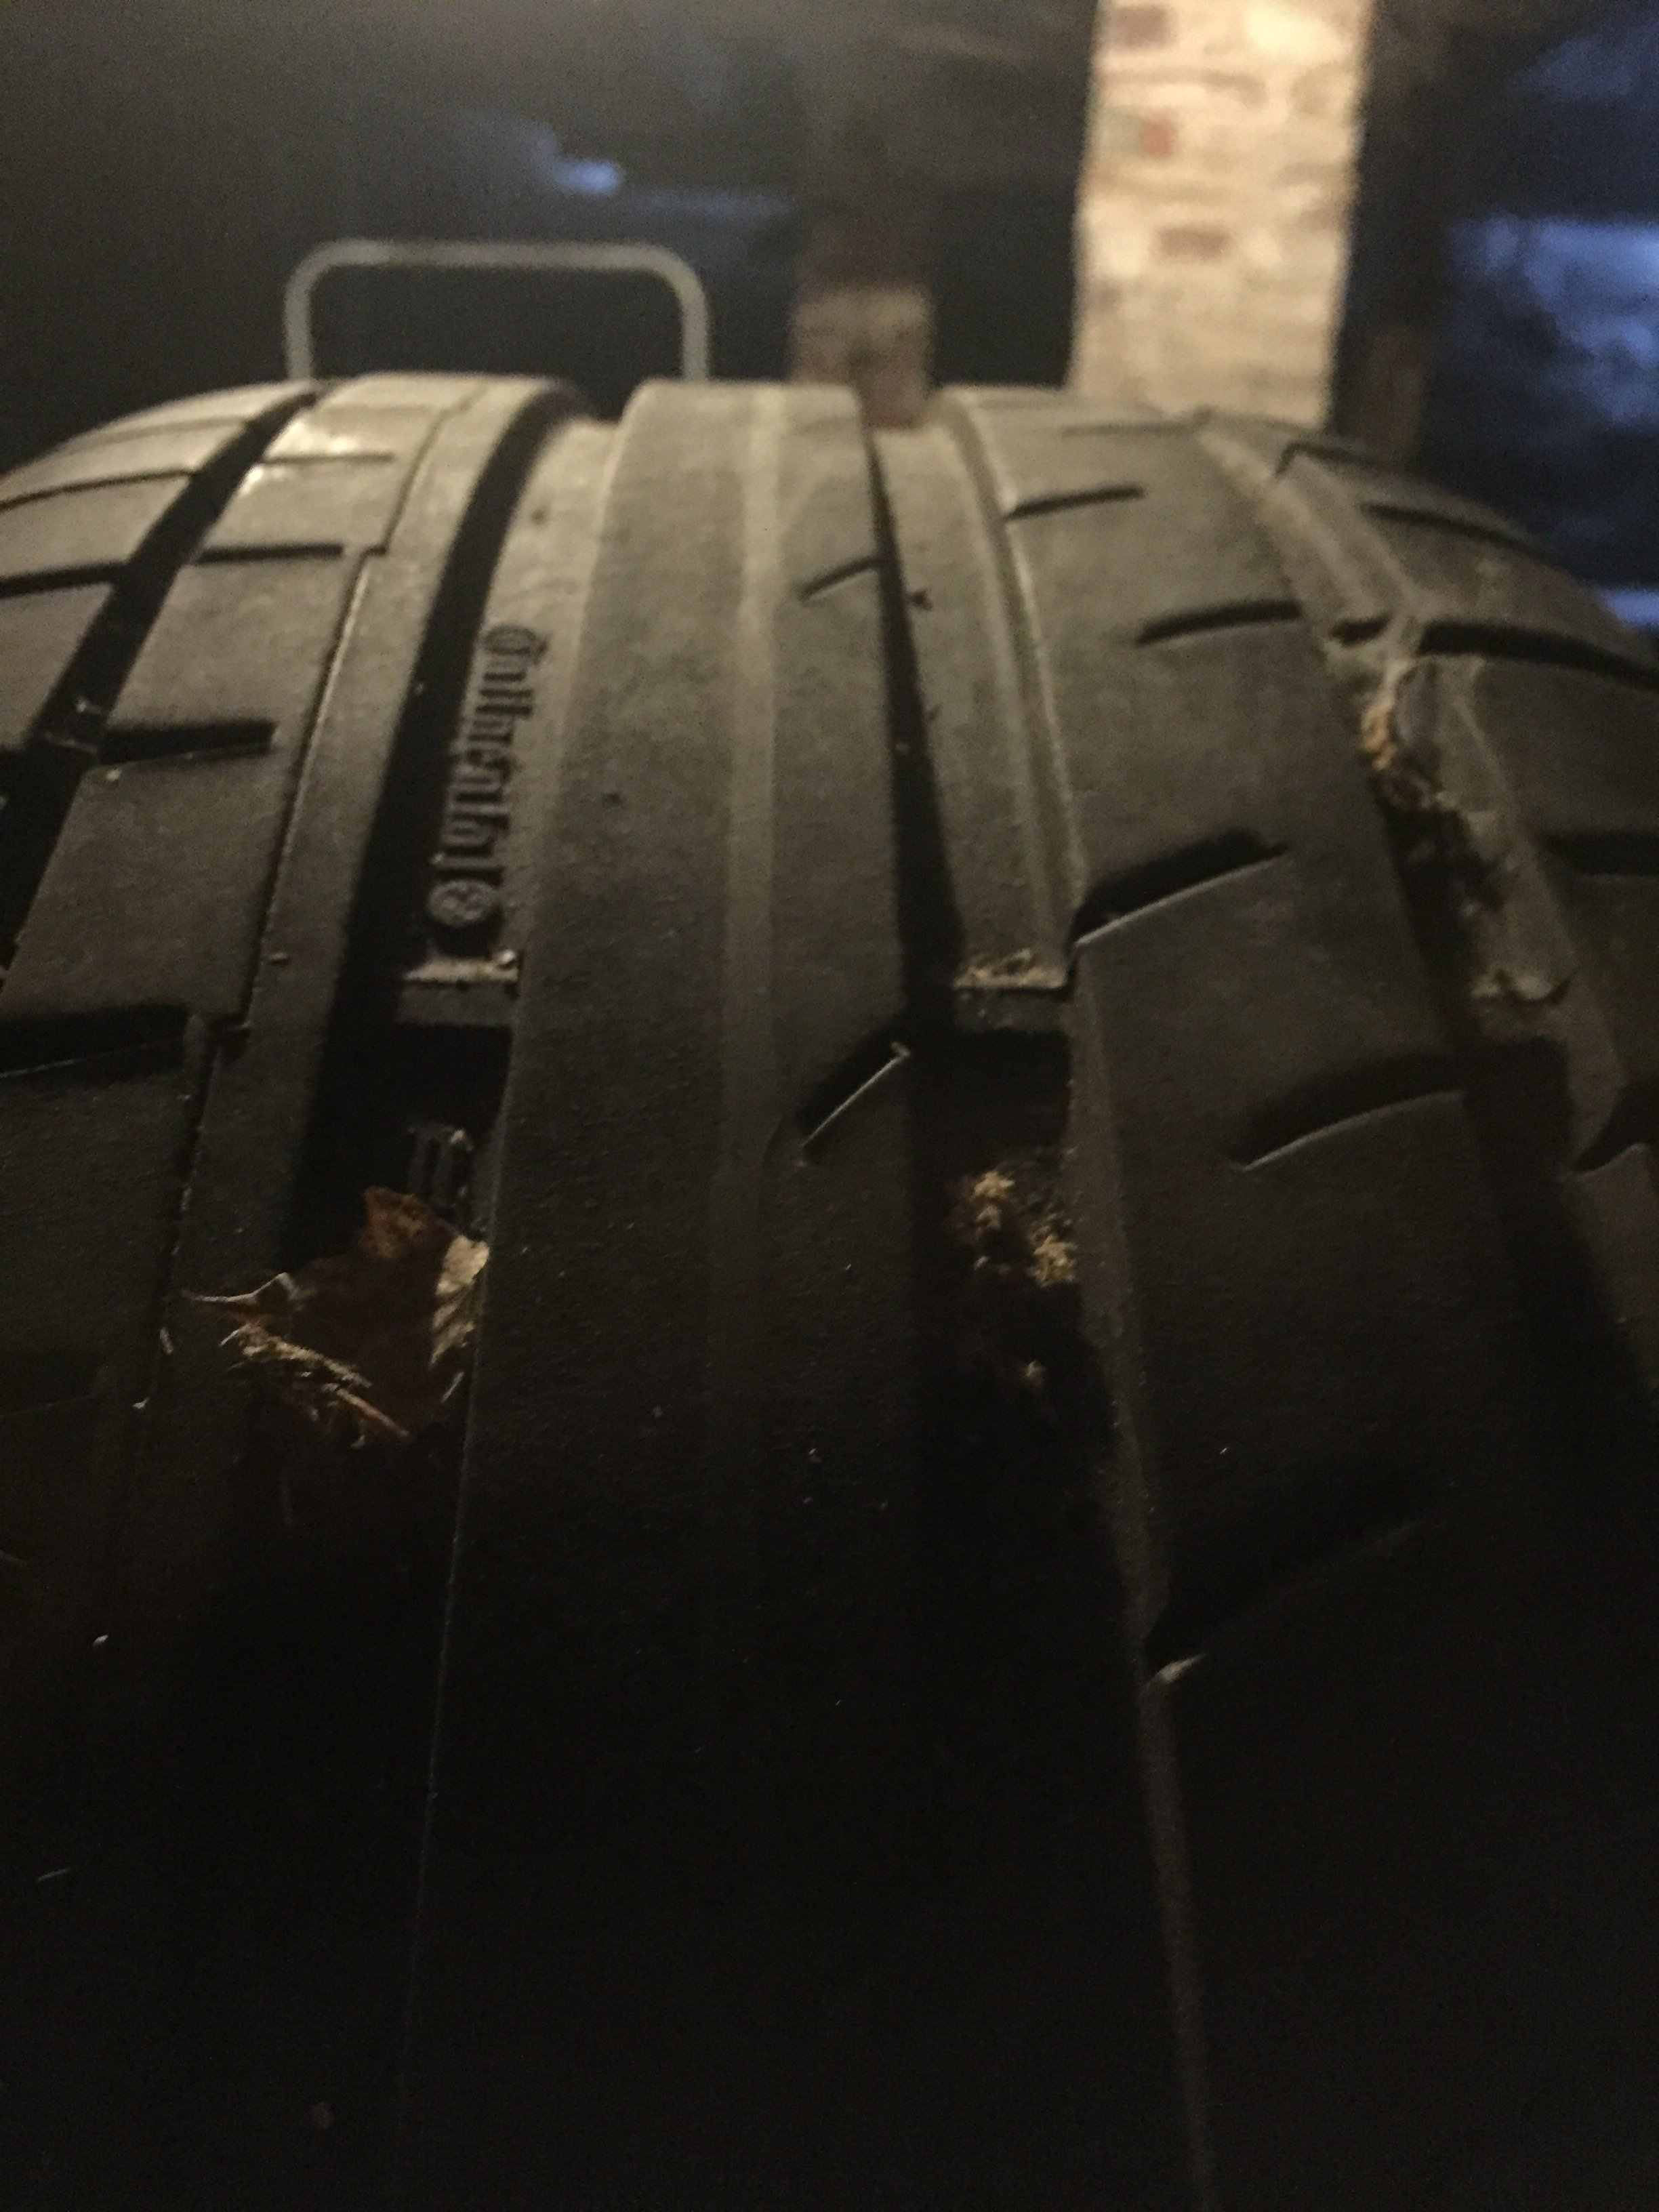 Tire 1 Tread.JPG